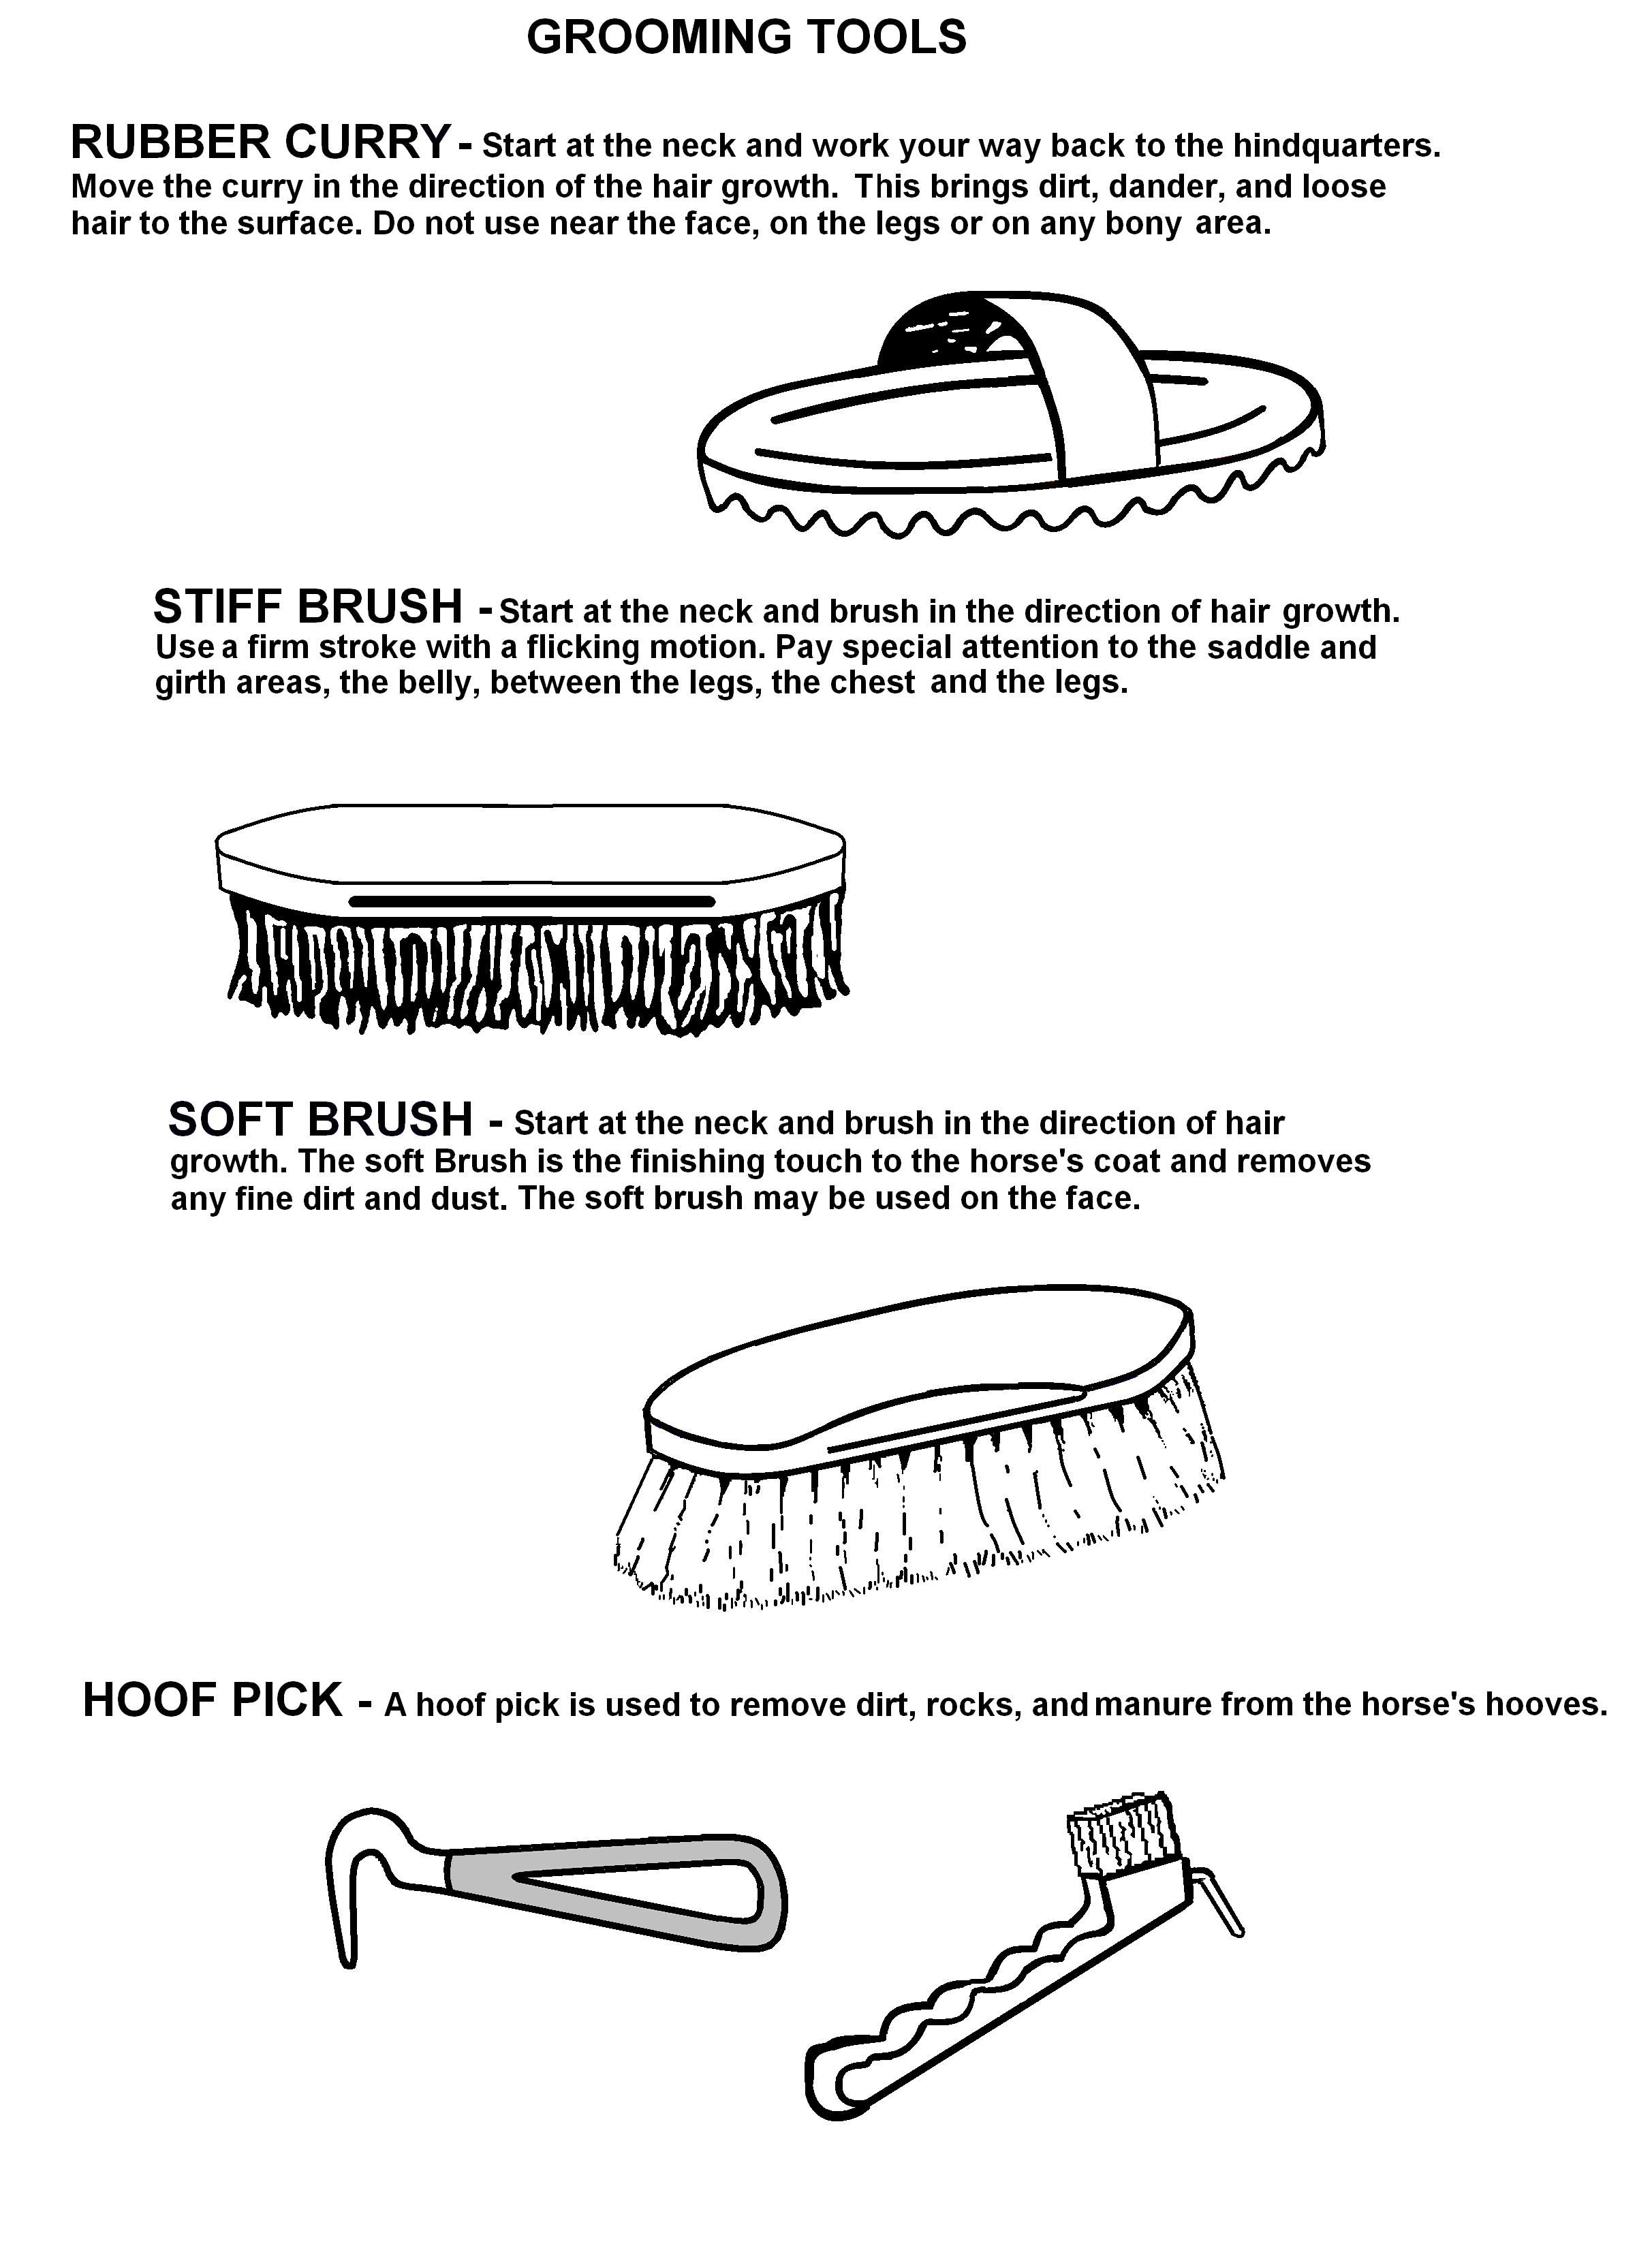 picture about Grooming Tools for Horses Printable Worksheet titled Pin through Tenting Gang upon Tenting Tools Horse grooming